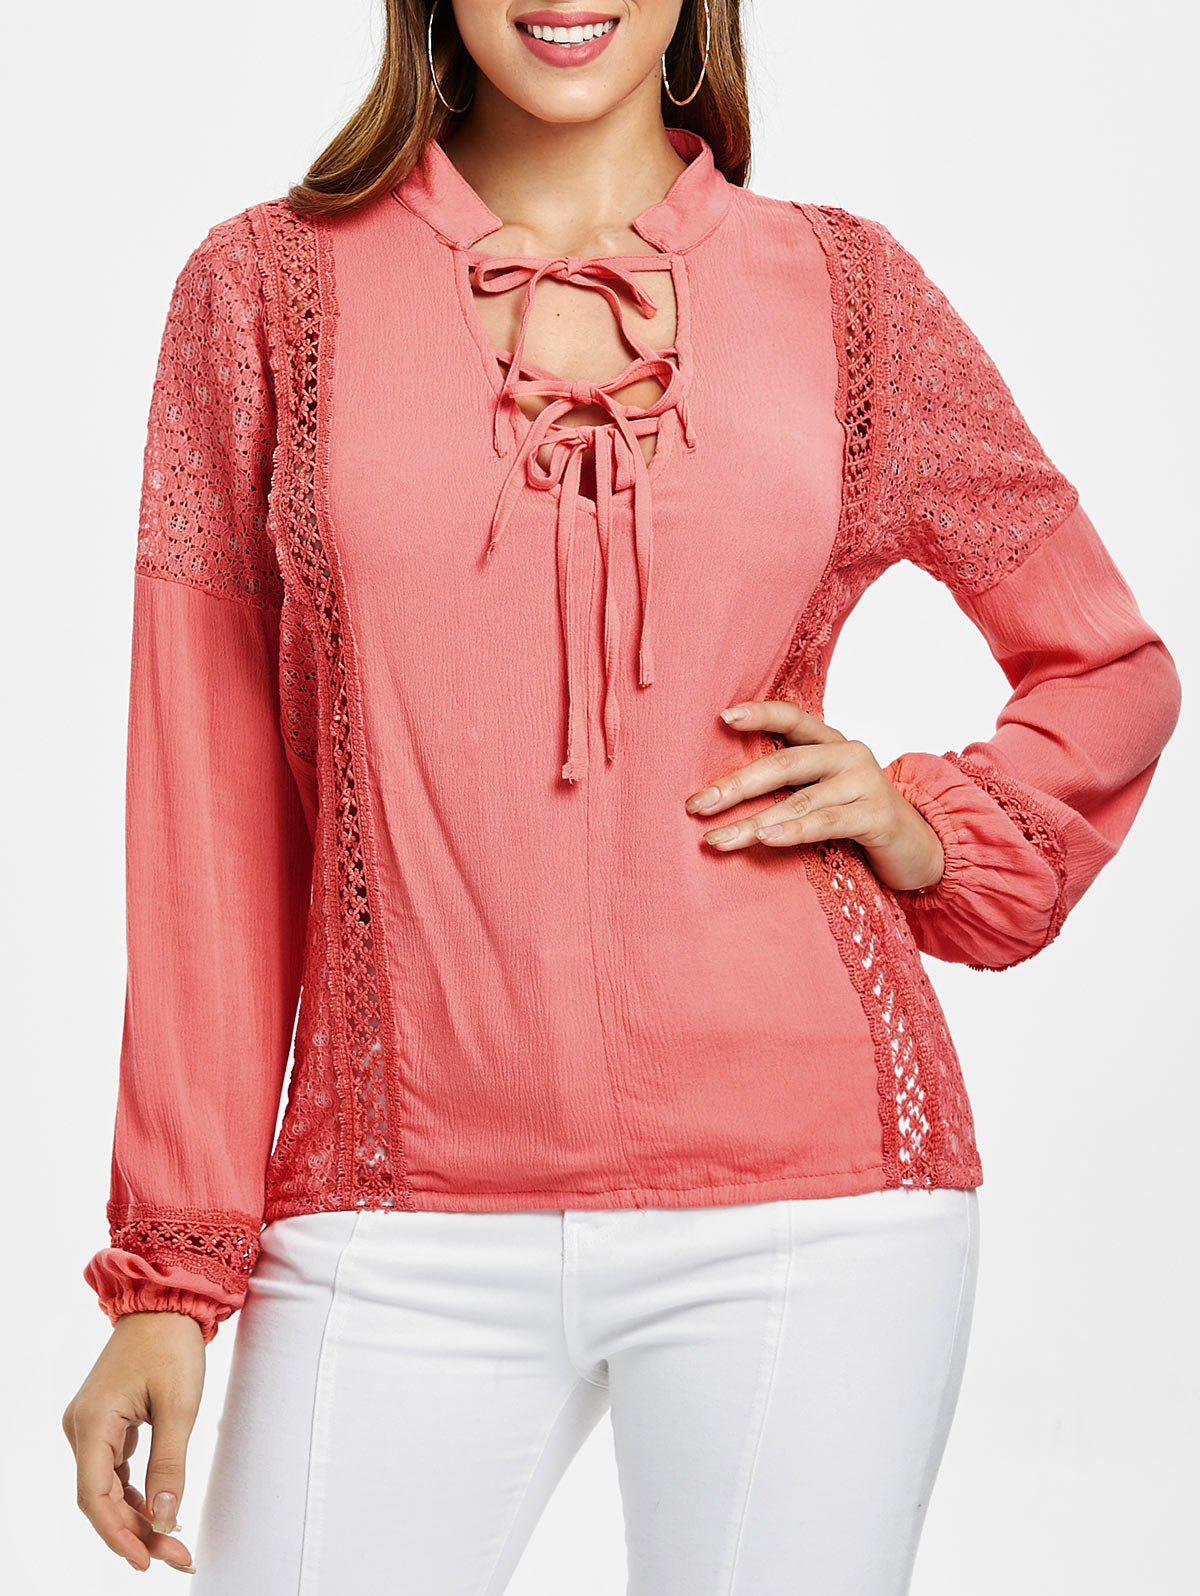 Lace Panel Top with Tie